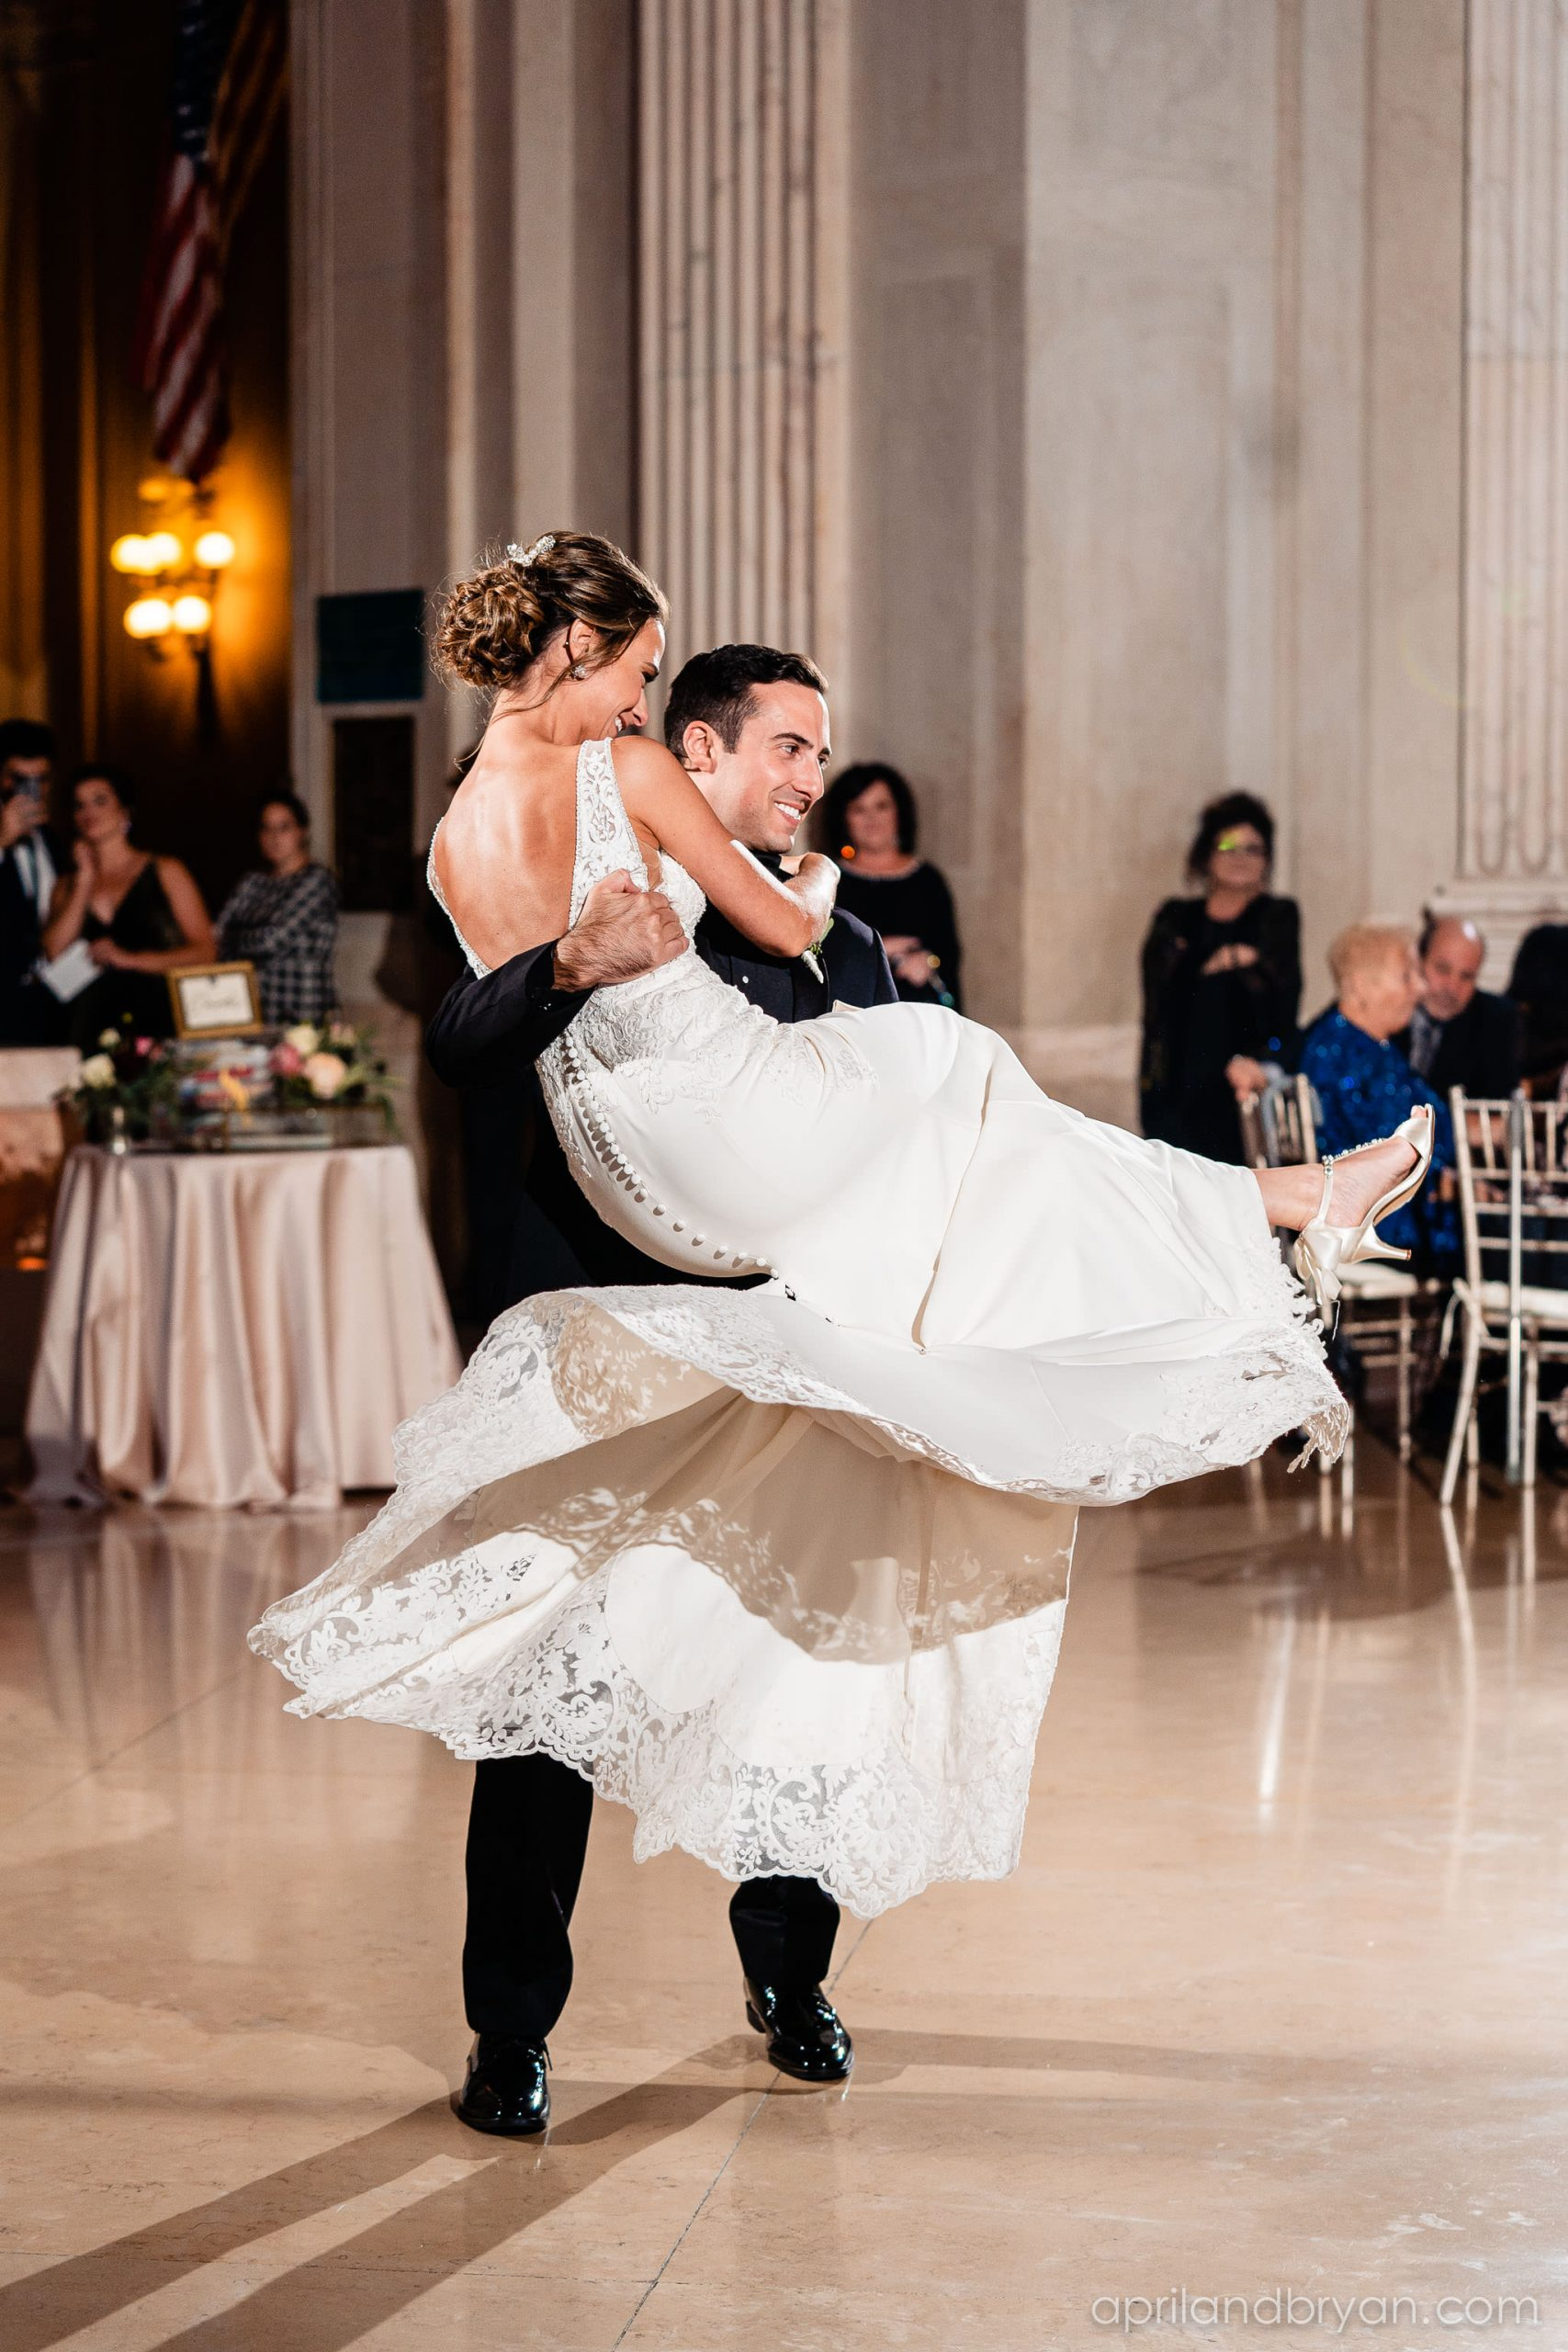 A little swing dancing to start the night off right by the bride and groom at the Franklin Institute in Philadelphia. All captured by April & Bryan Photography. Featured on Dream Weddings.